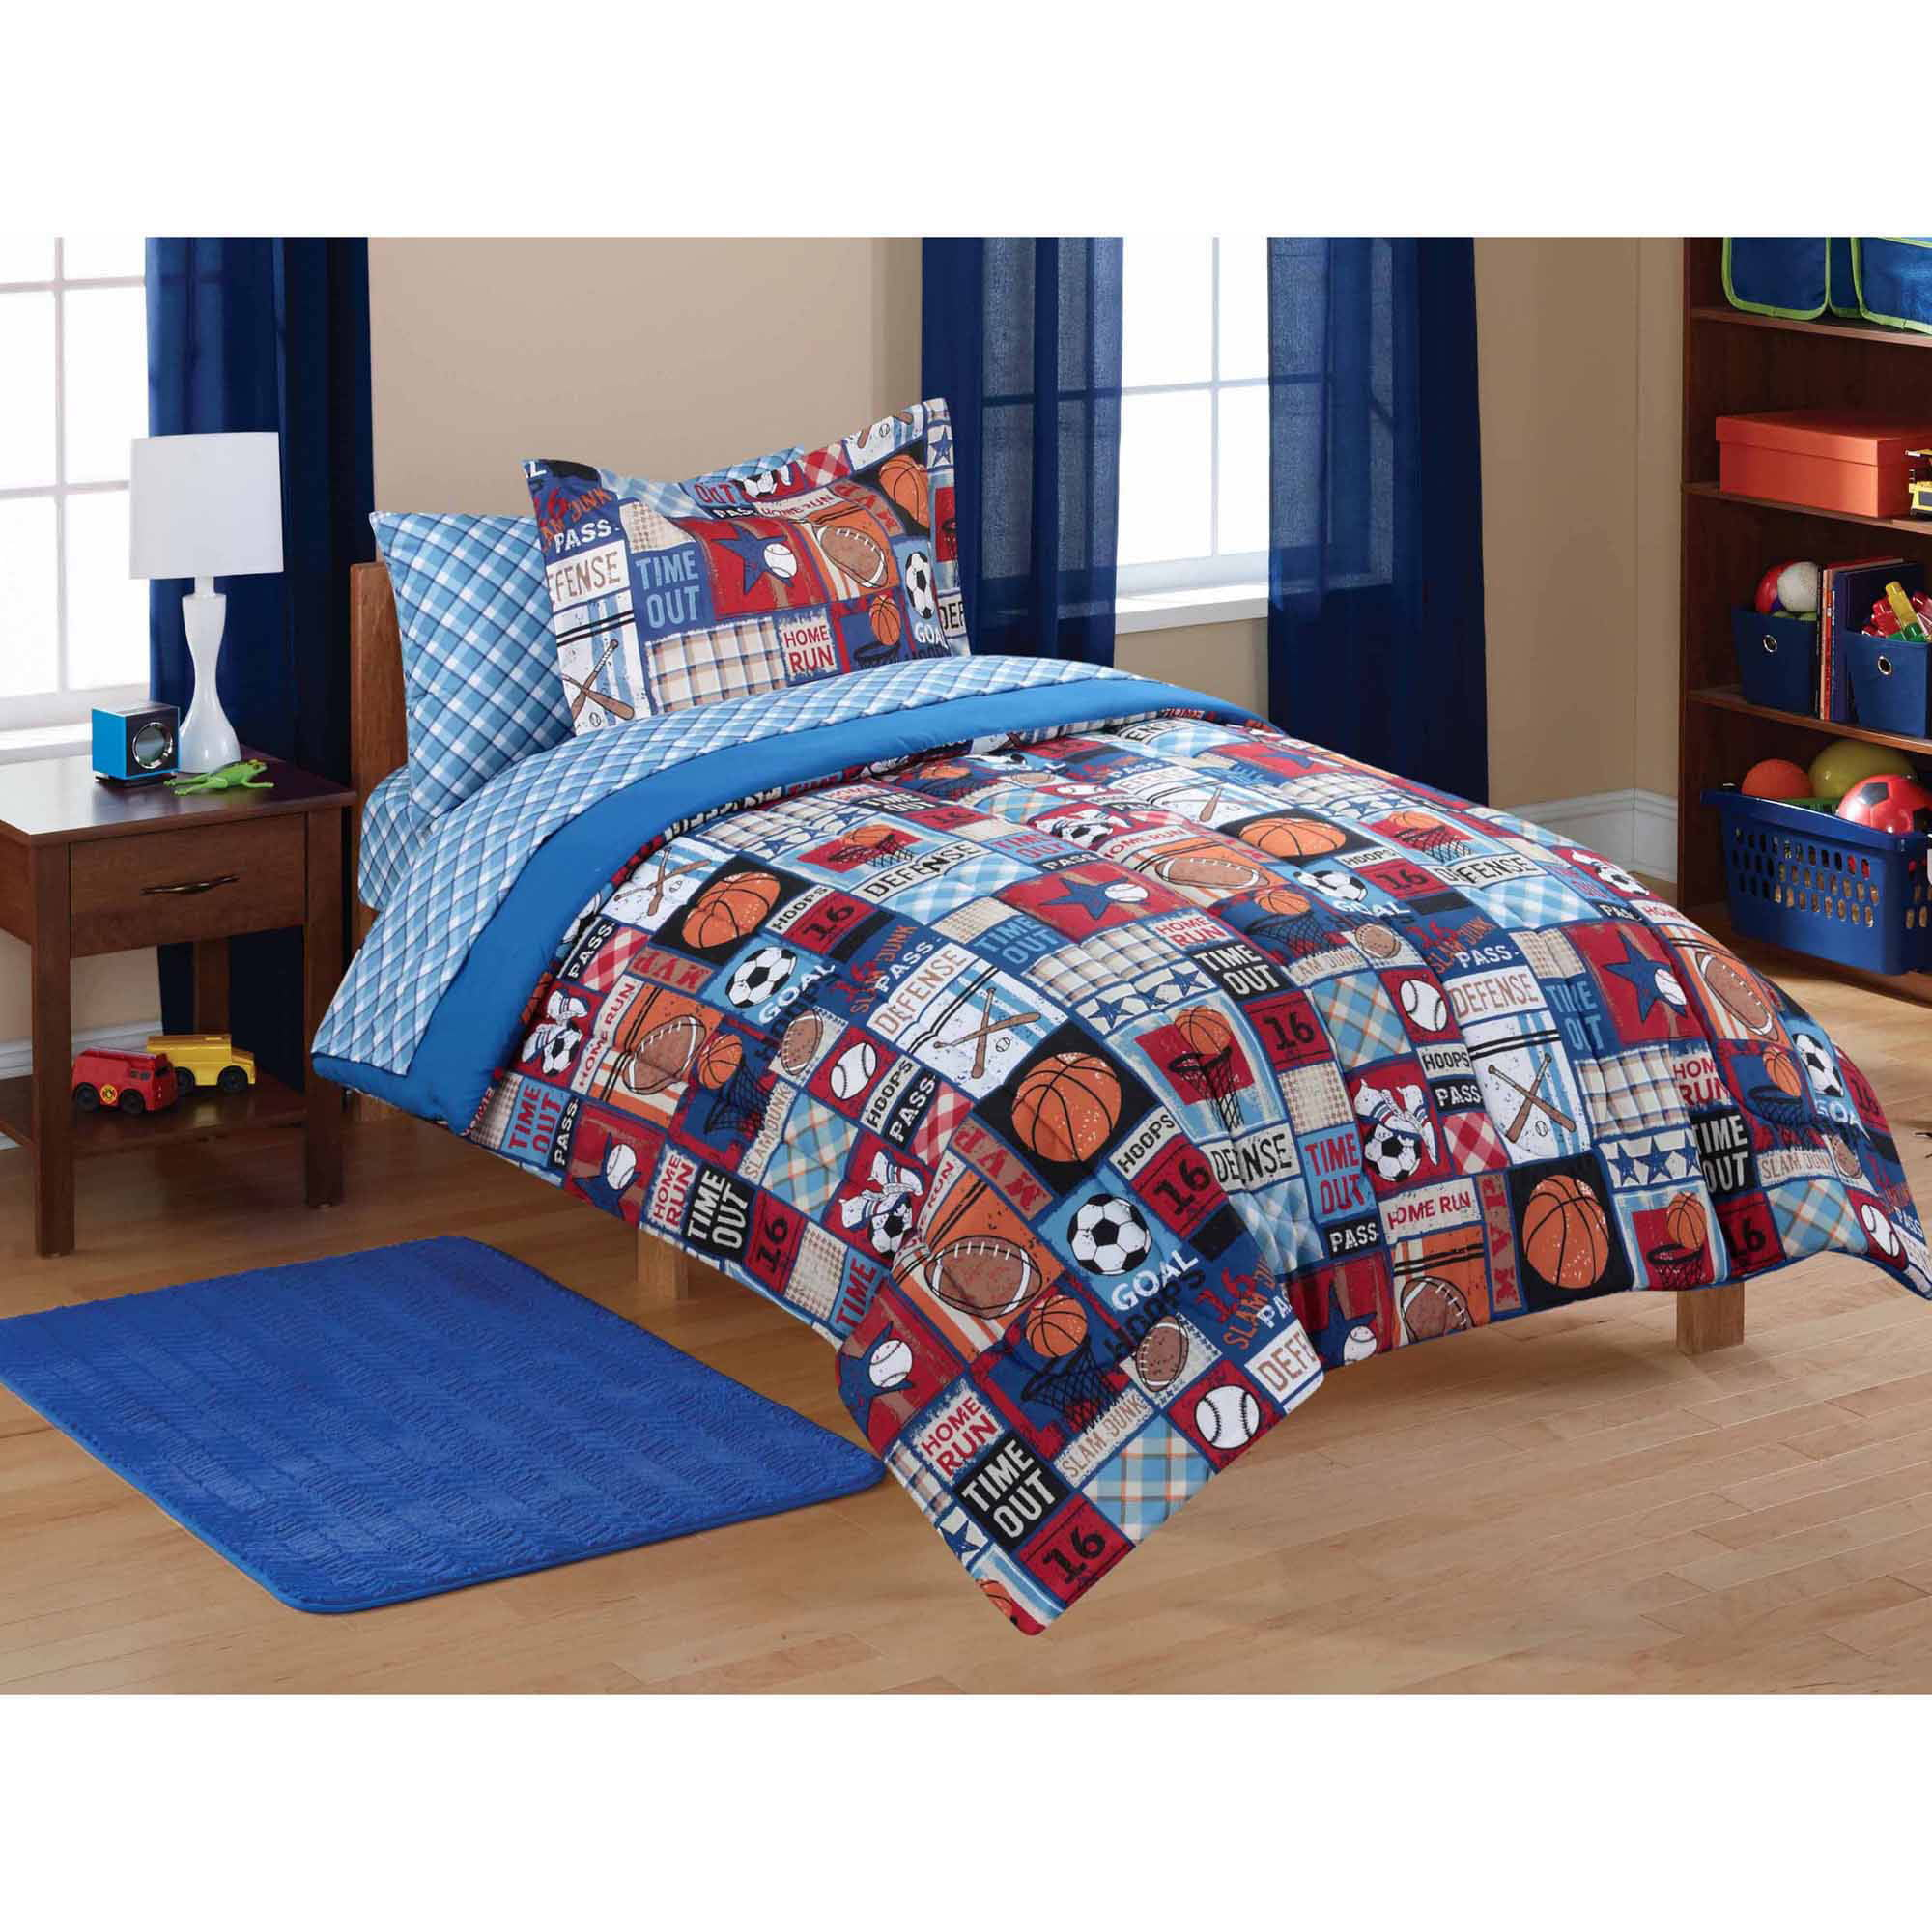 Bedding sets for teenage girls walmart - Bedding Sets For Teenage Girls Walmart 48